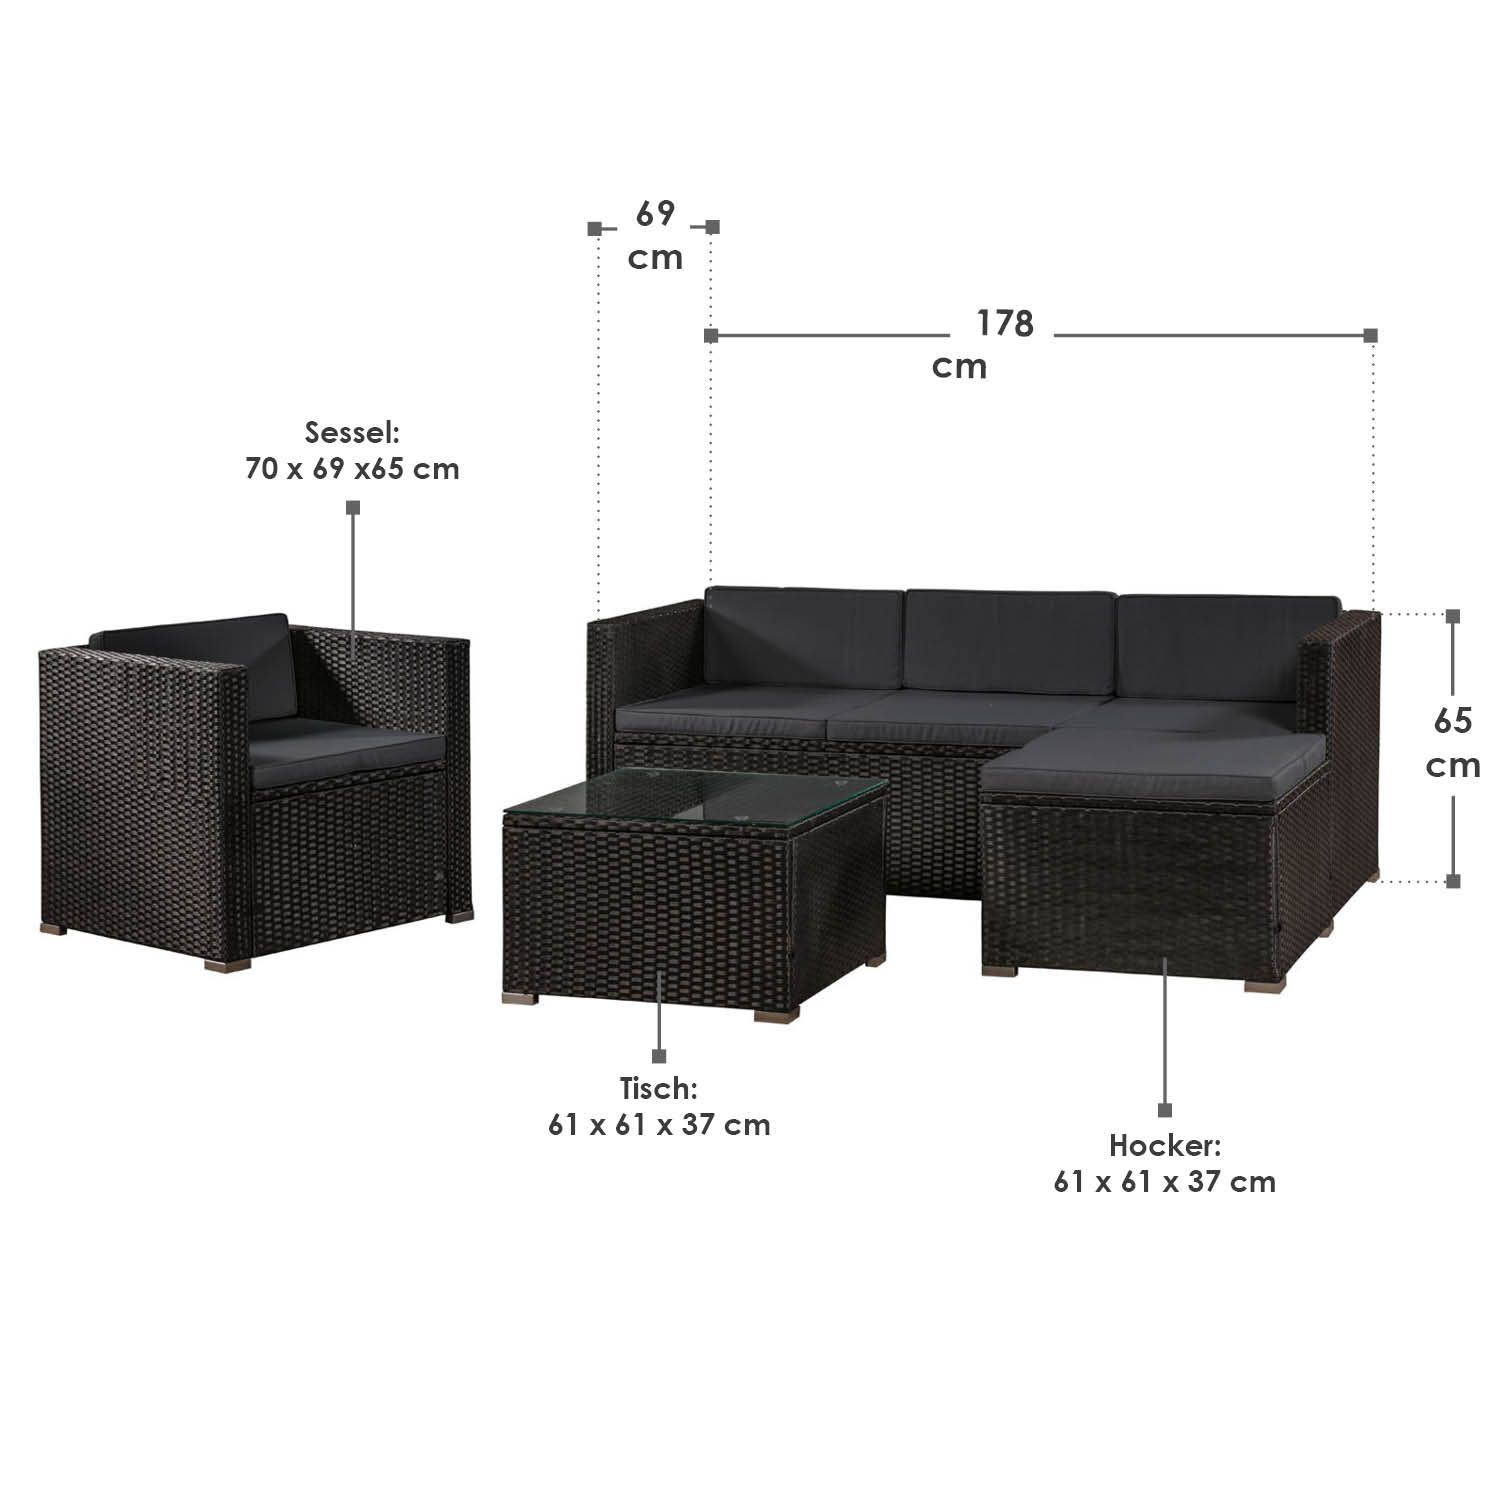 polyrattan gartenm bel lounge rattan gartenset sitzgruppe. Black Bedroom Furniture Sets. Home Design Ideas